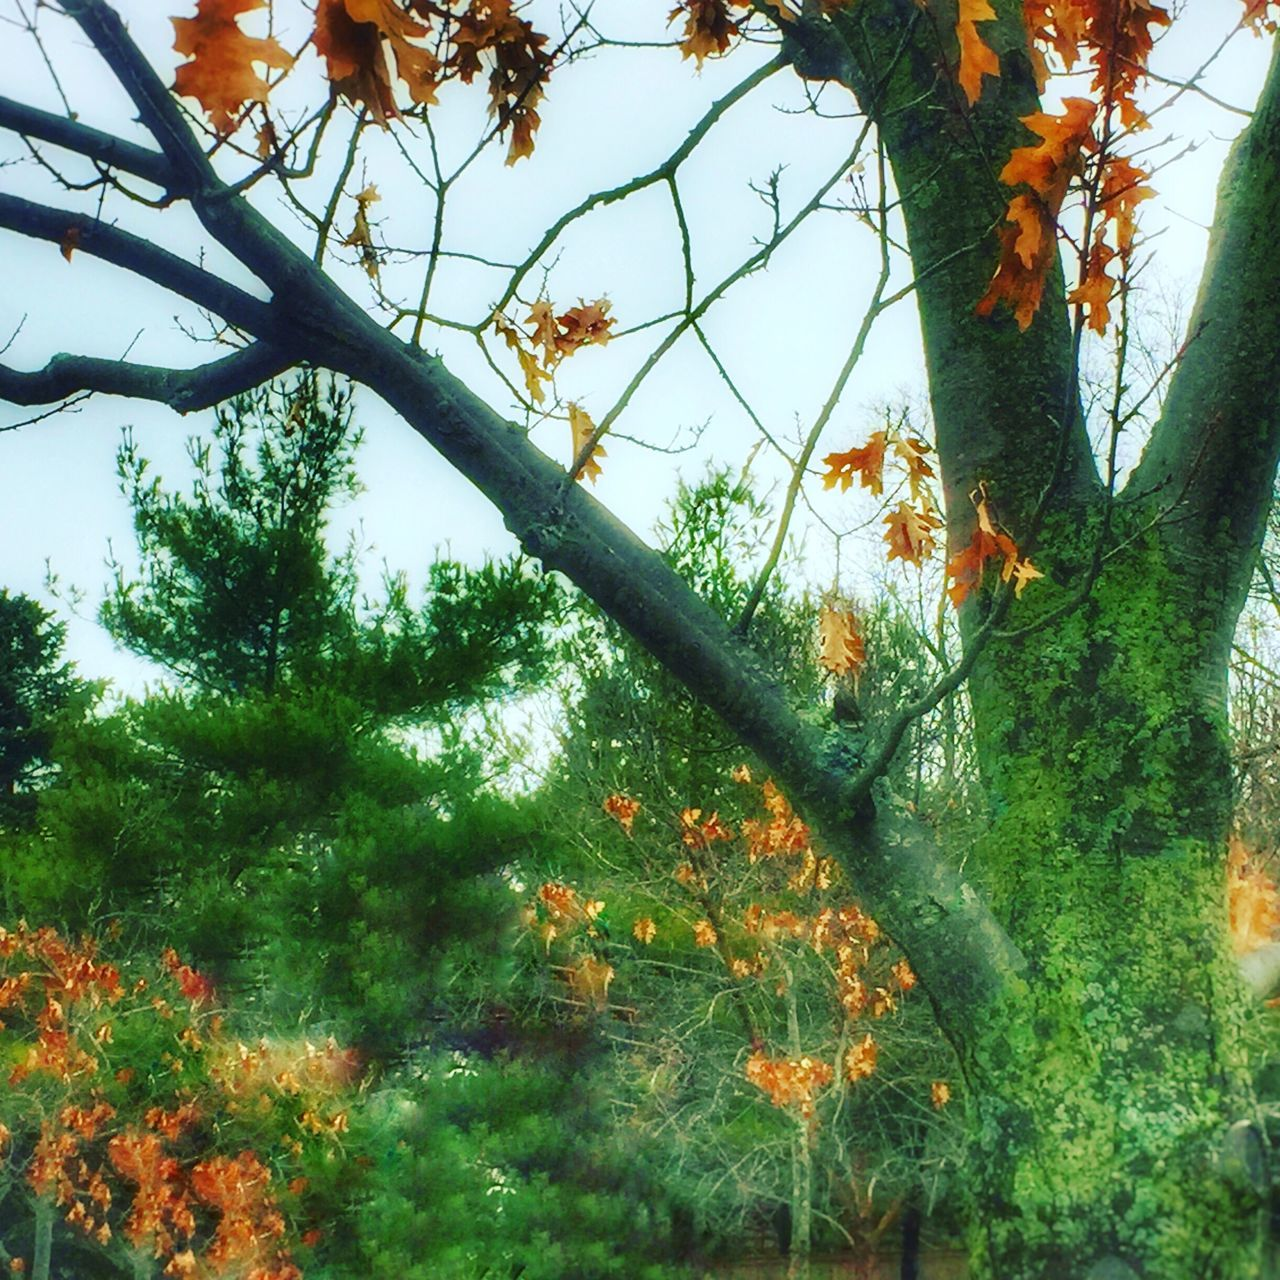 Tree Growth Nature Low Angle View No People Beauty In Nature Day Tranquility Outdoors Sky Branch Close-up Animal Themes Nature Leaf Green Orange Color Leaves Tree Autumn Green Color Warm Colors Filter Beauty In Nature Fall